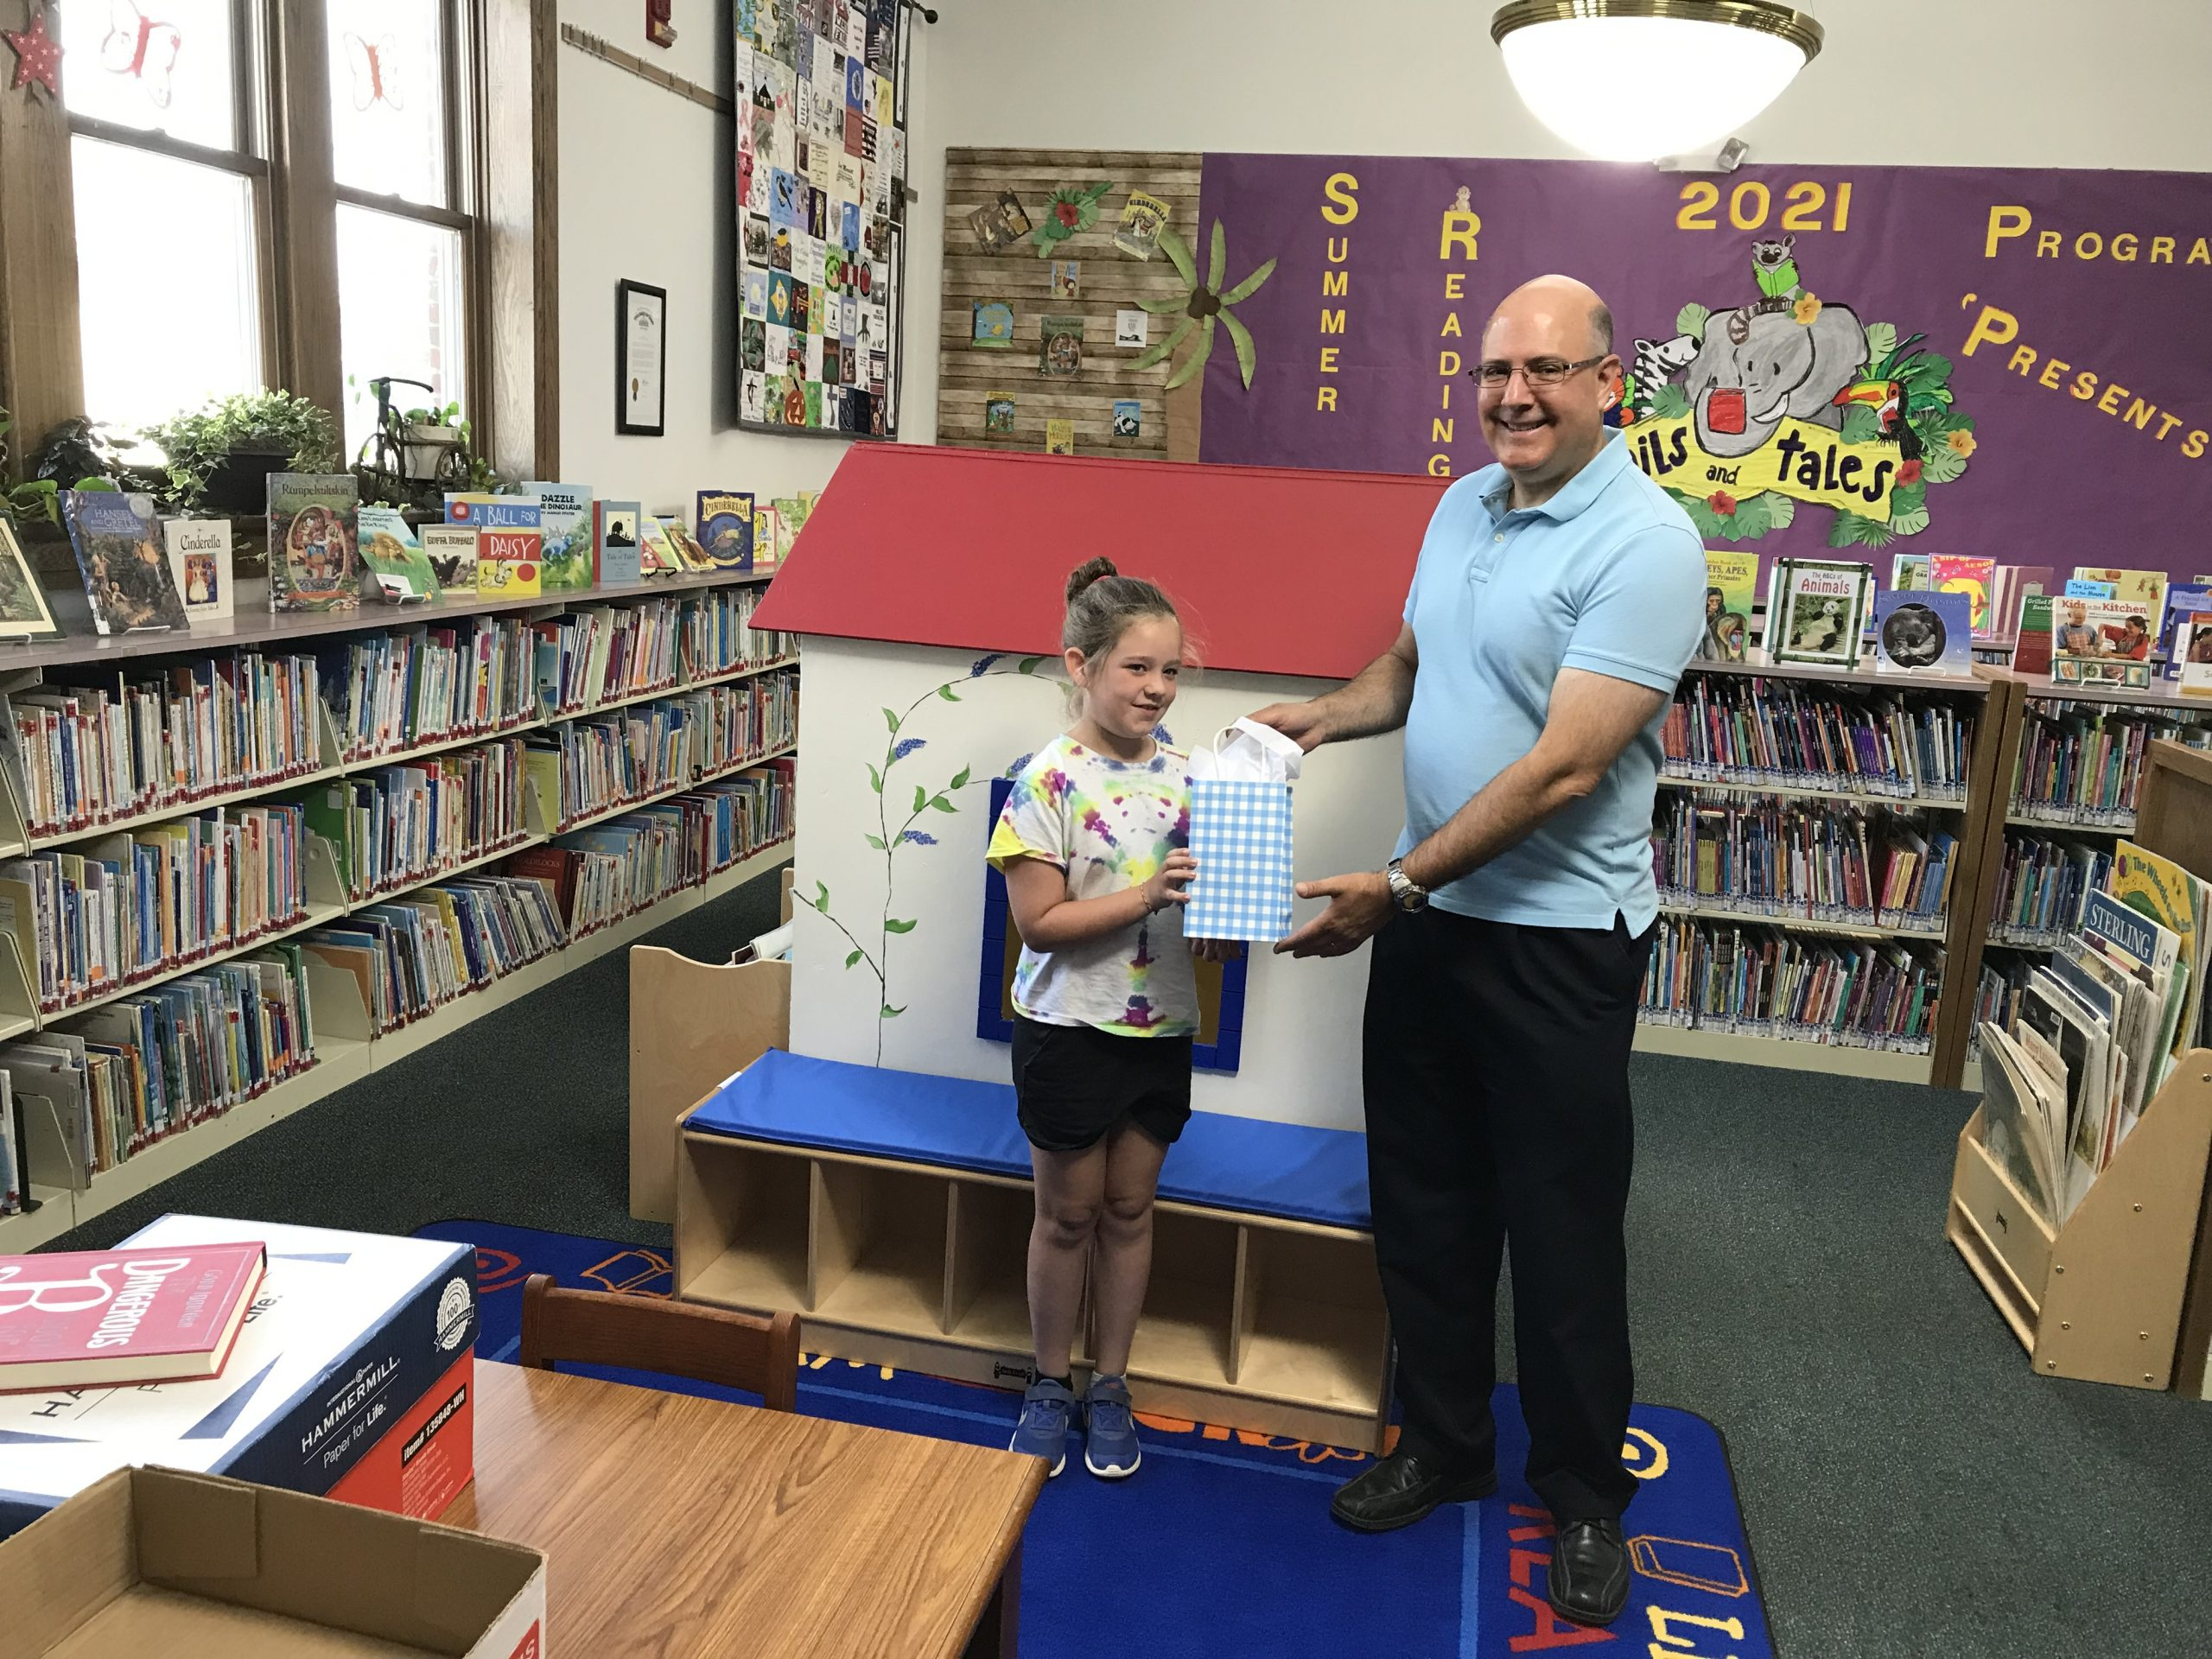 Emily Hignite was a top winner in the Mt. Sterling Public Library's Tails & Tales Summer Reading Program's reading challenge. Library director Steve Brindza is seen here presenting her with a $50 Amazon gift card.